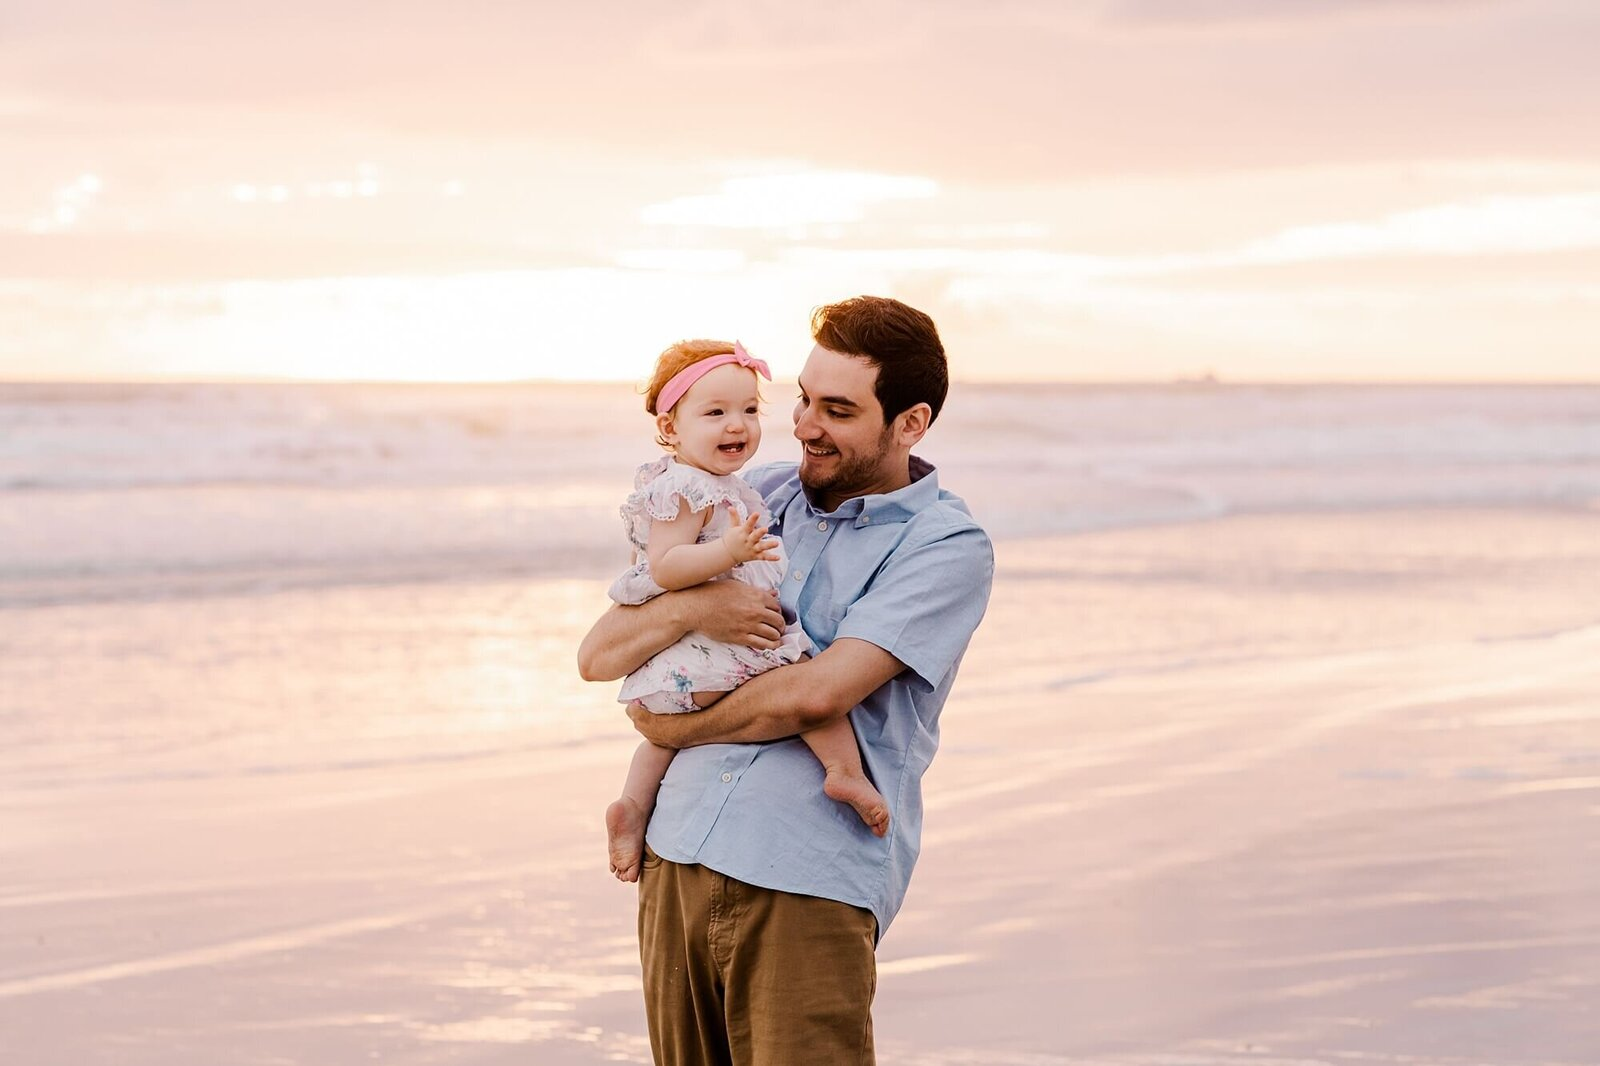 winterhaven-park-family-session-new-smyrna-beach-haleigh-nicole-photography_0019